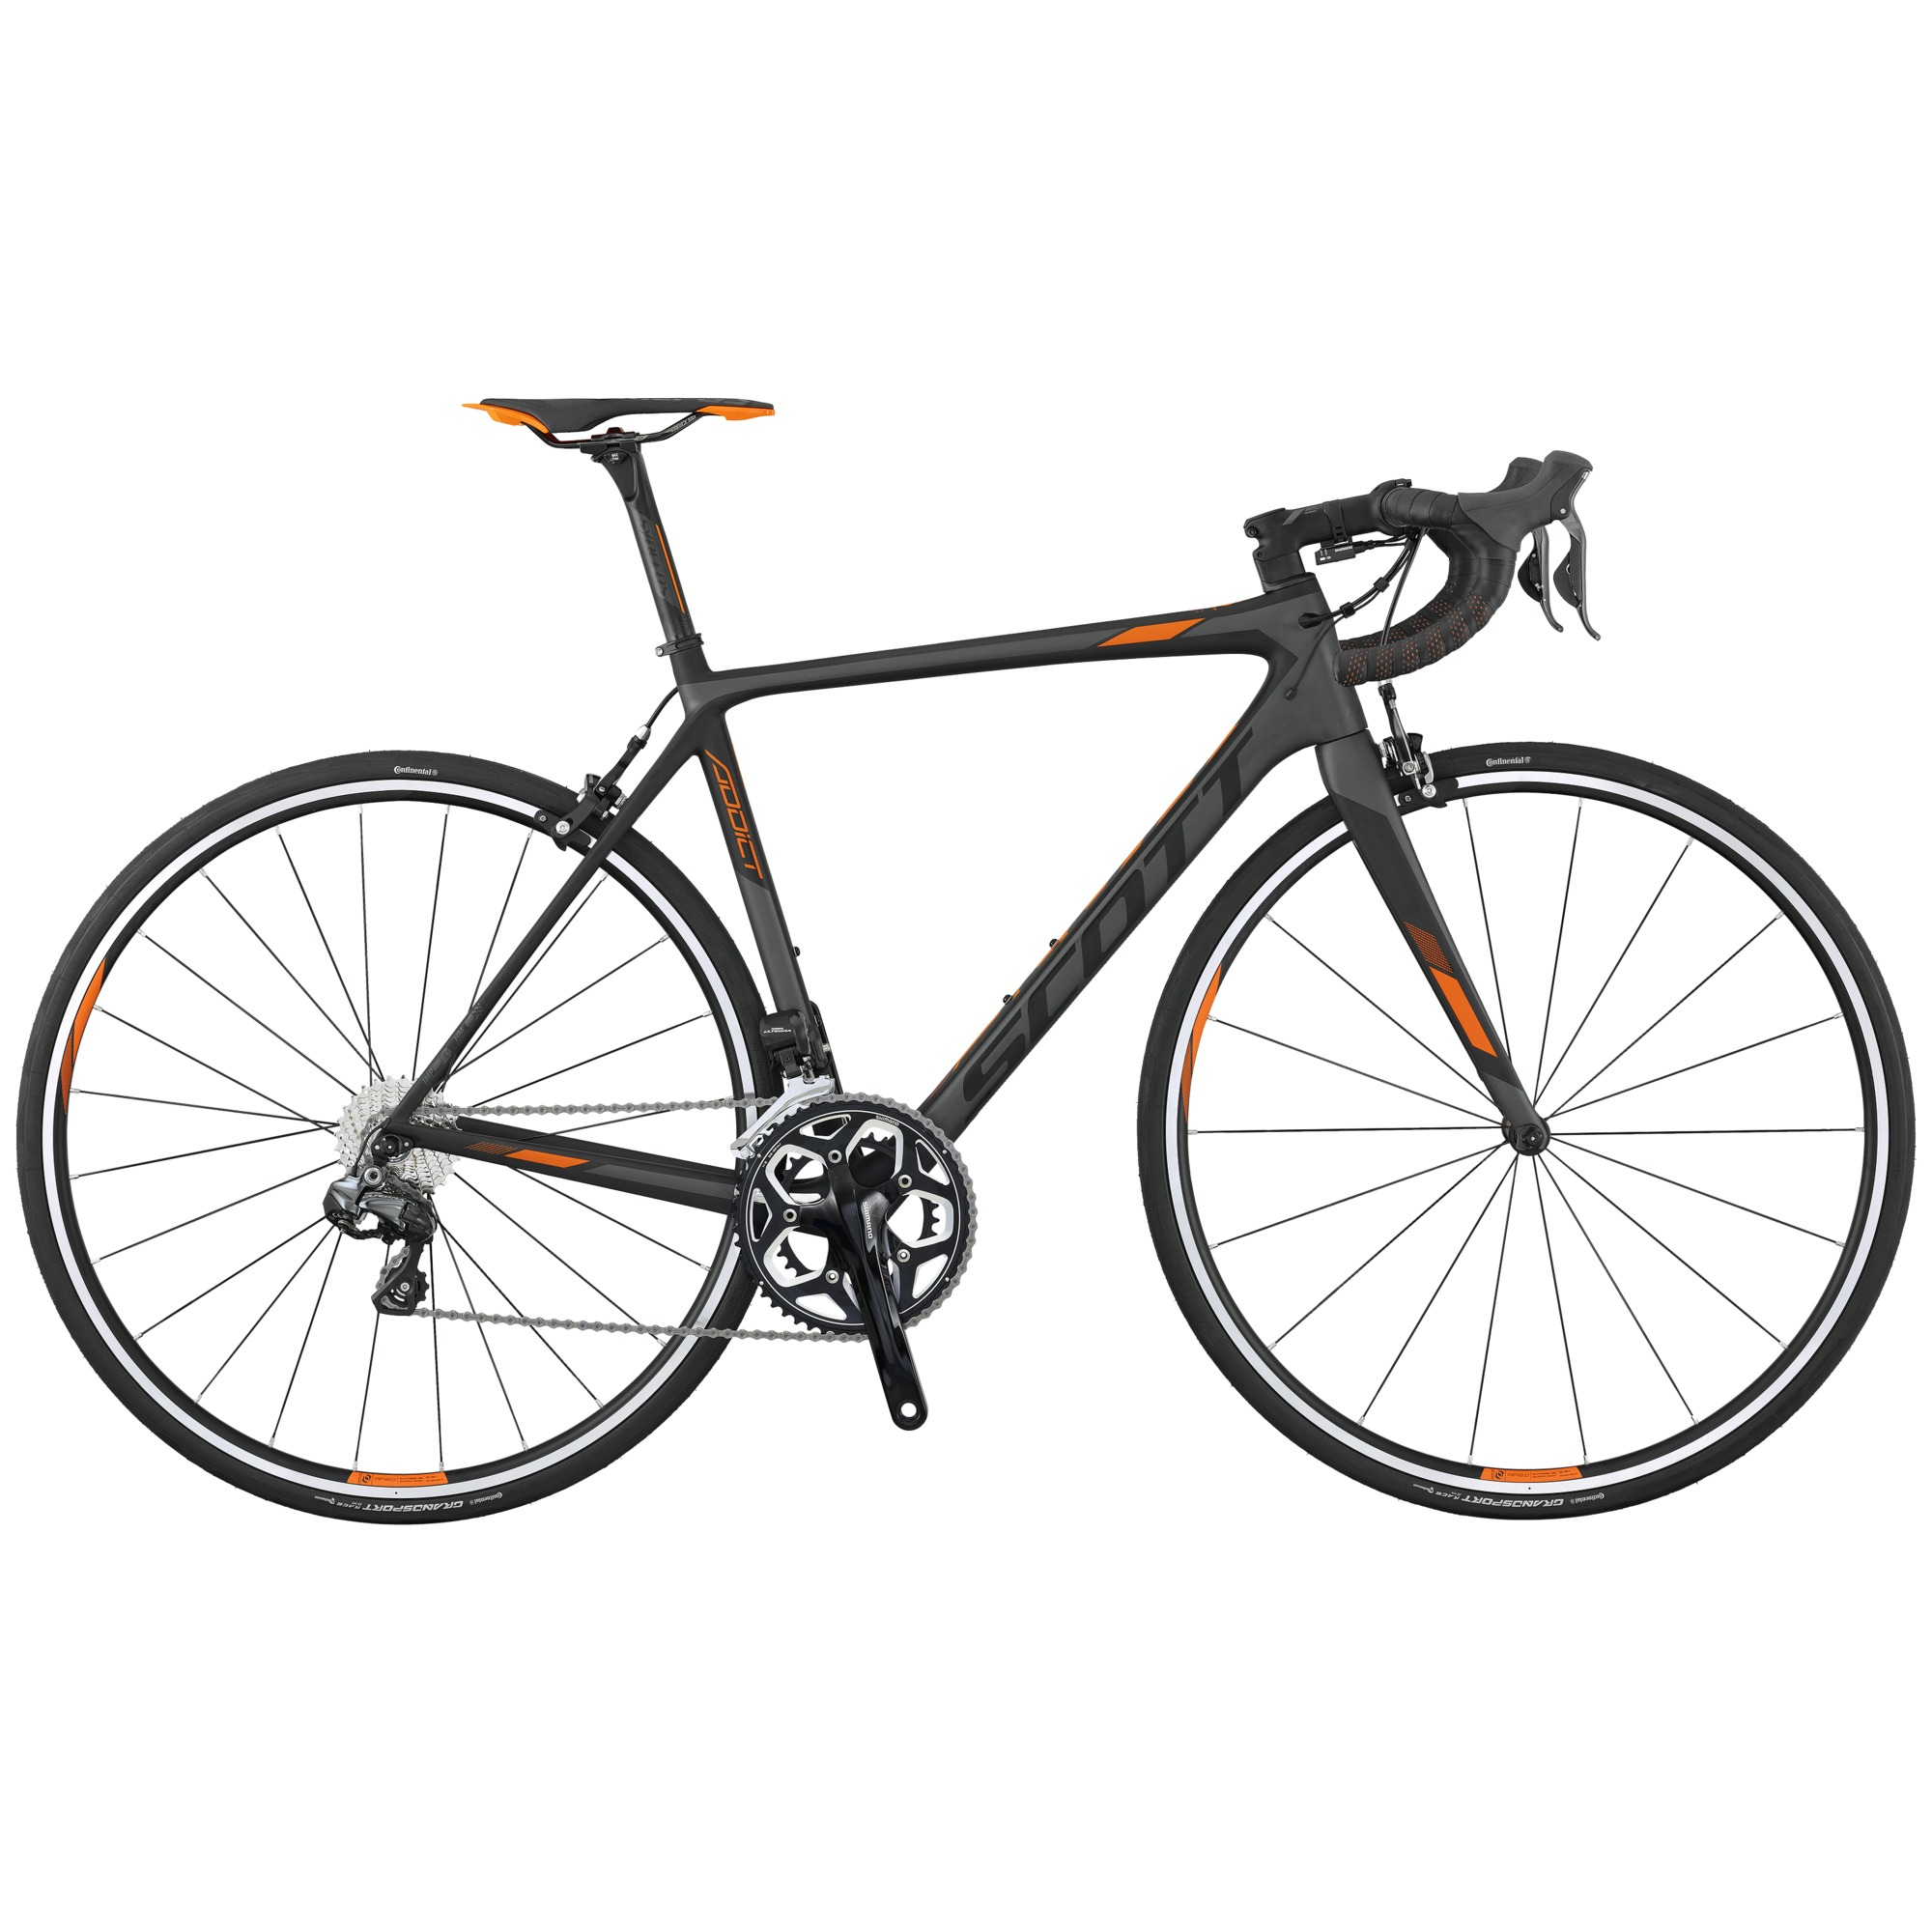 SCOTT Addict 15 Di2 Bike